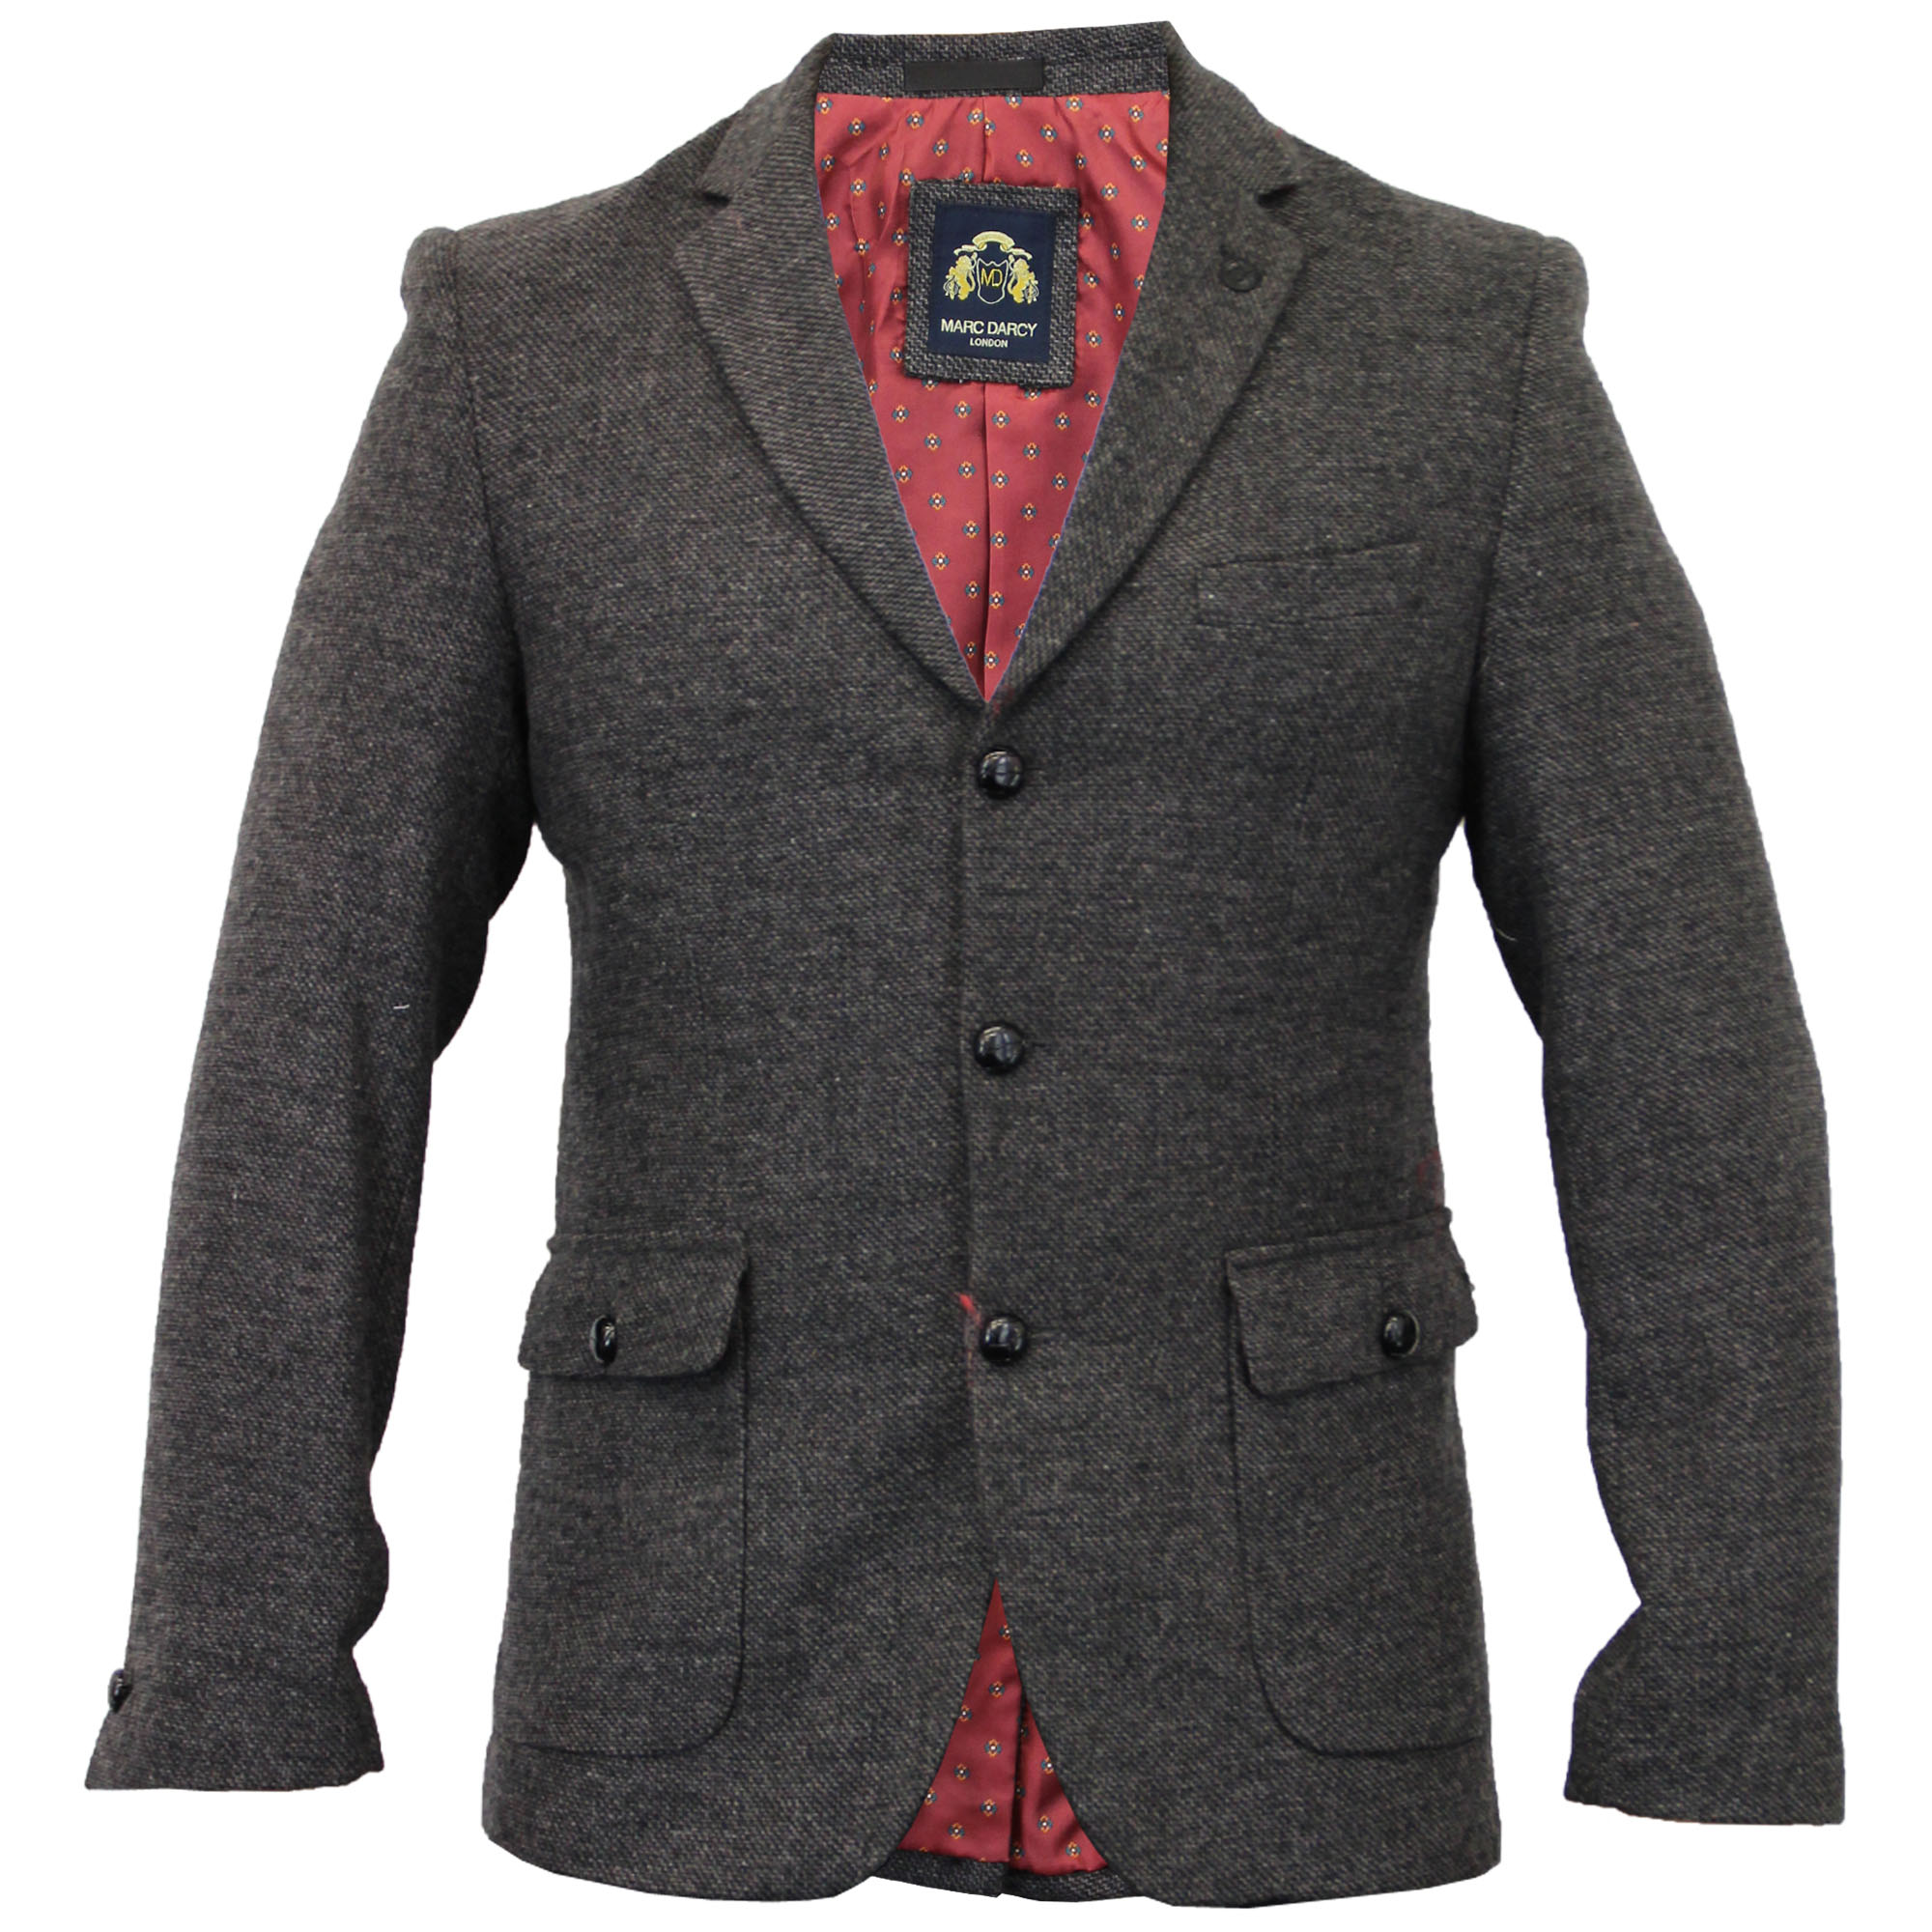 Mens-Blazer-Marc-Darcy-Coat-Formal-Suit-Jacket-Patches-Herringbone-Designer-New